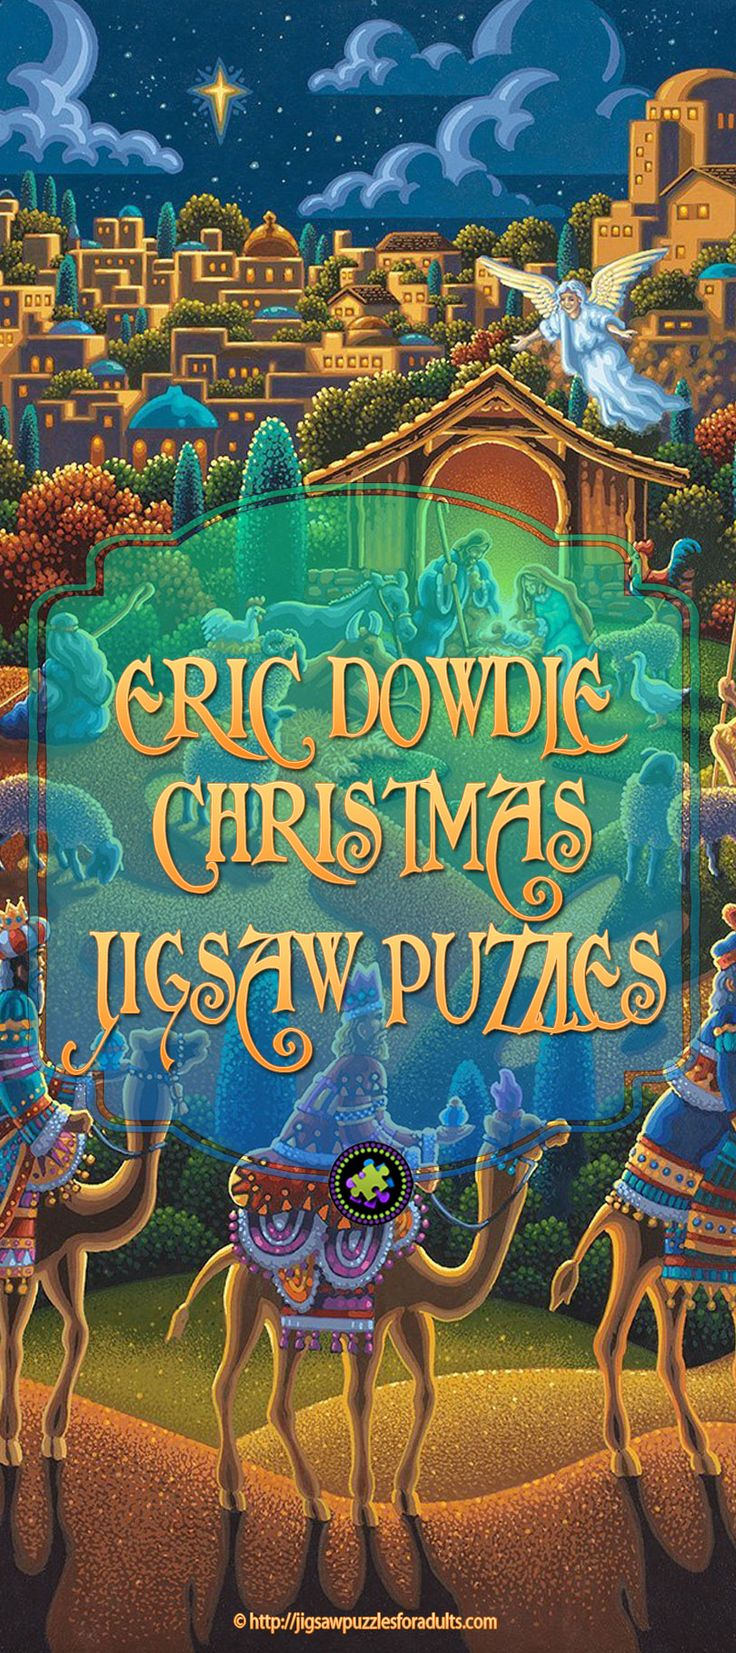 If you love folk art you'll simply love these Eric Dowdle Christmas Puzzles! There are very few artist that are able to capture the charm and warmth of the Christmas season like Eric Dowdle.